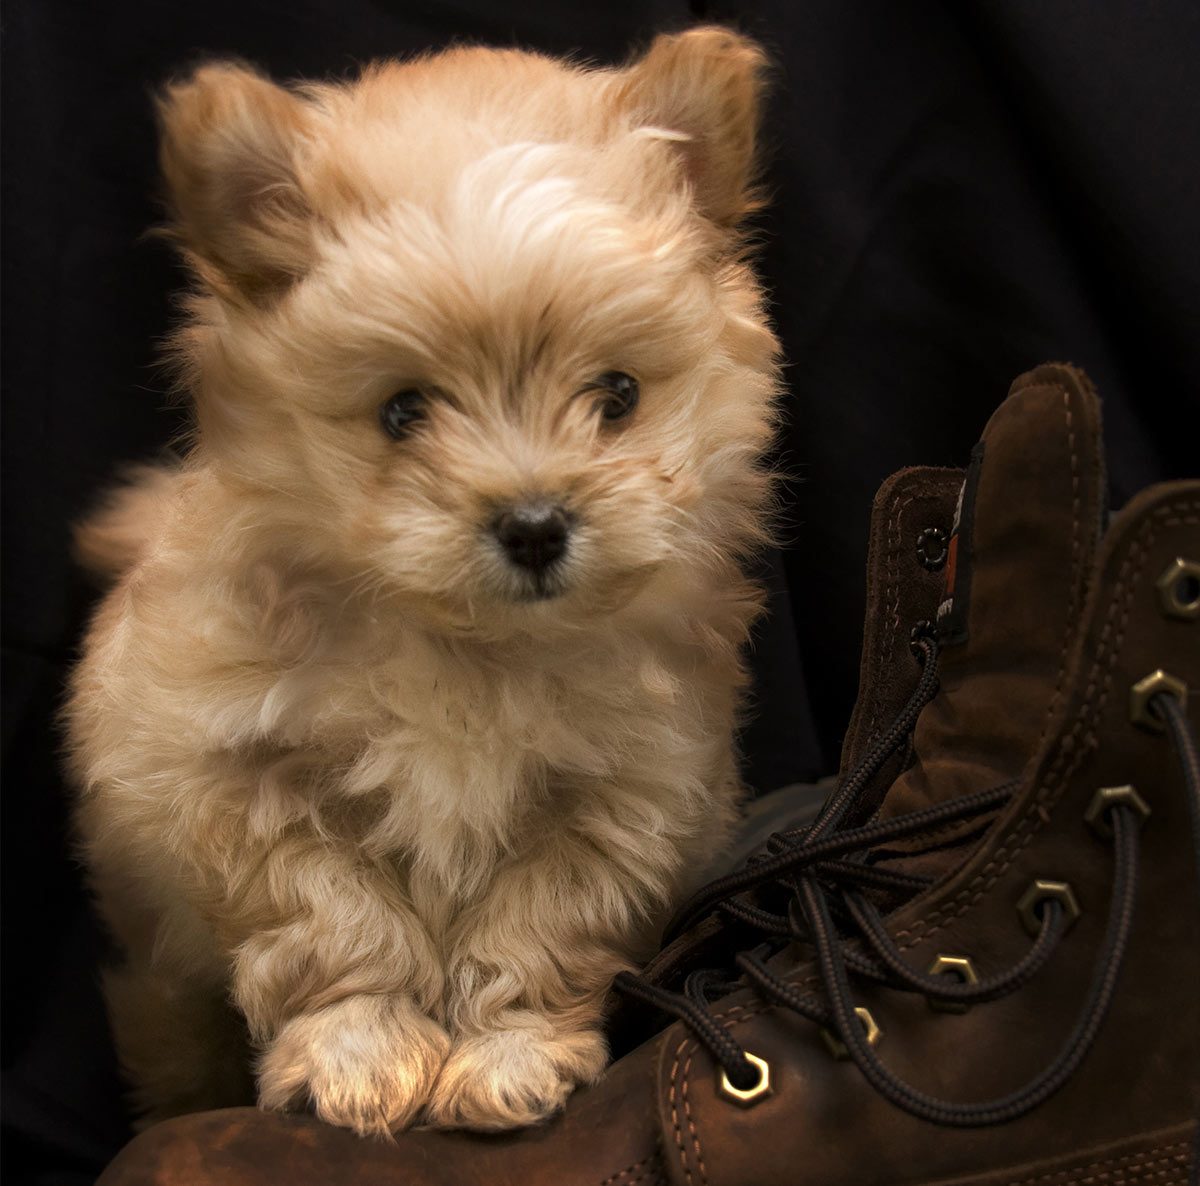 Pomapoo – Is The Pomeranian Poodle Mix For You?